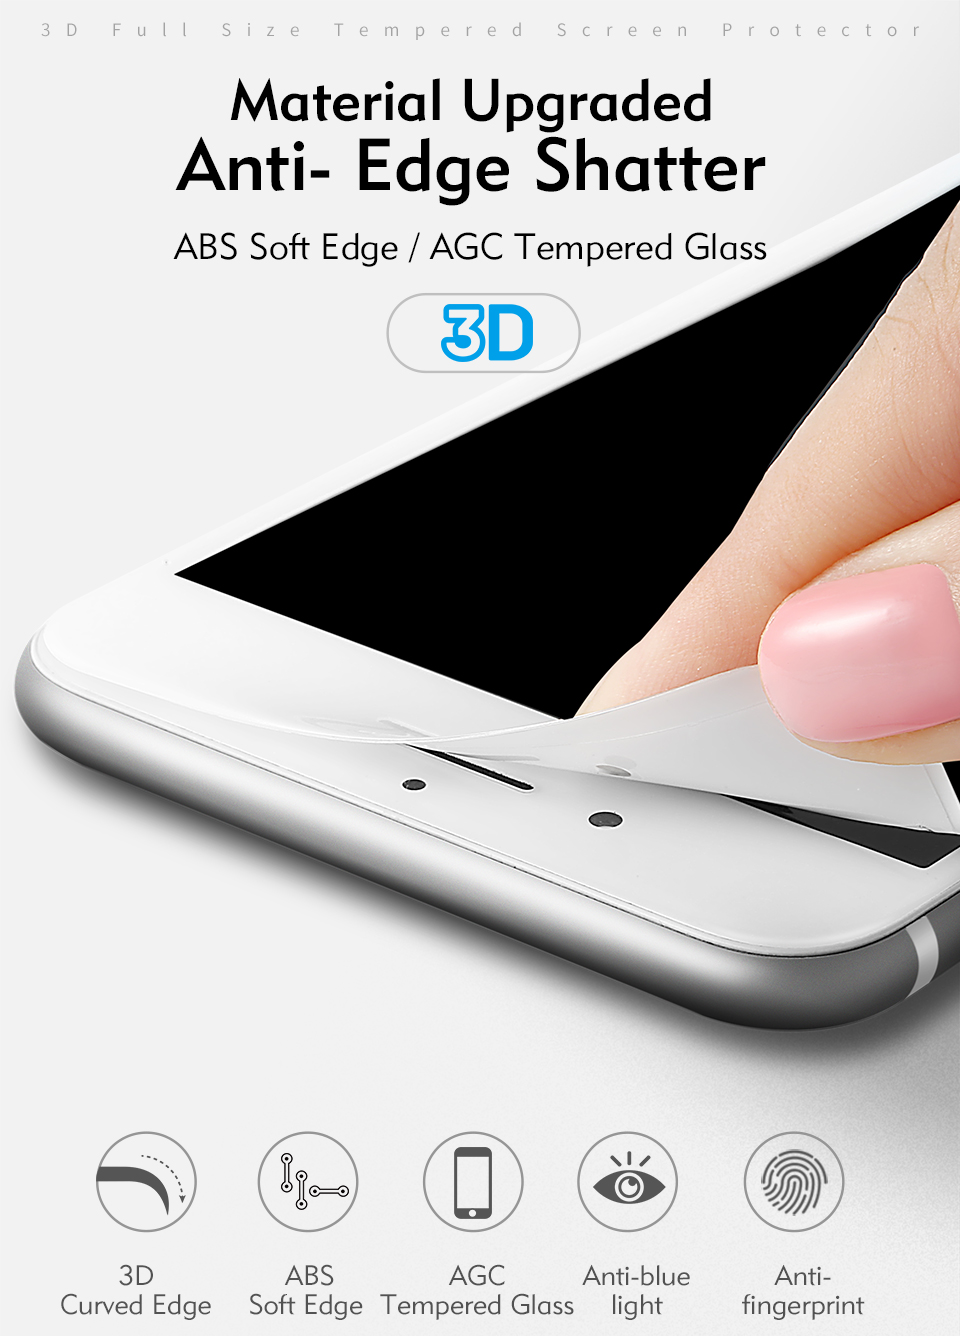 Benks 3d Curved Tempered Glass Screen Protector For Iphone 8 7 6s Plus Clear Full Cover Premium Pro Phone Celular Protection Film 7plus 960 01 02